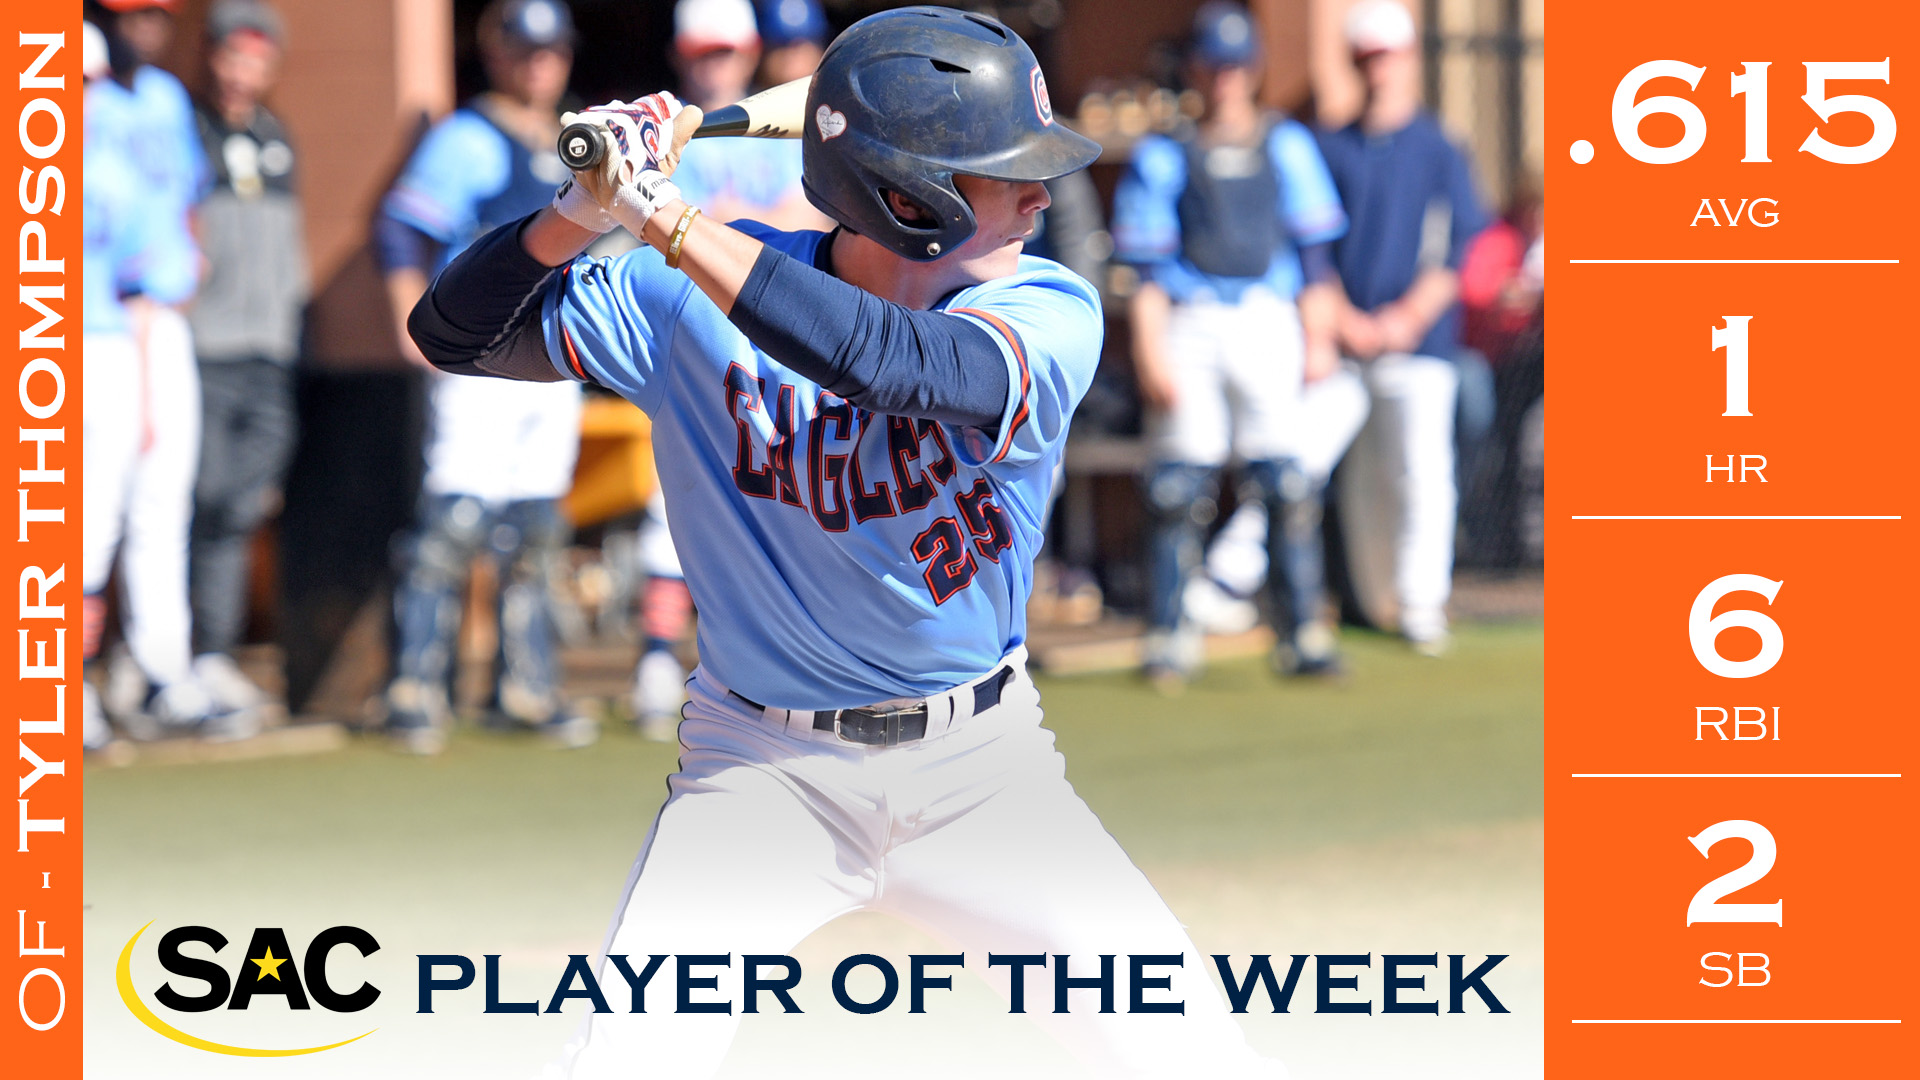 Thompson tallies first-career SAC Player of the Week